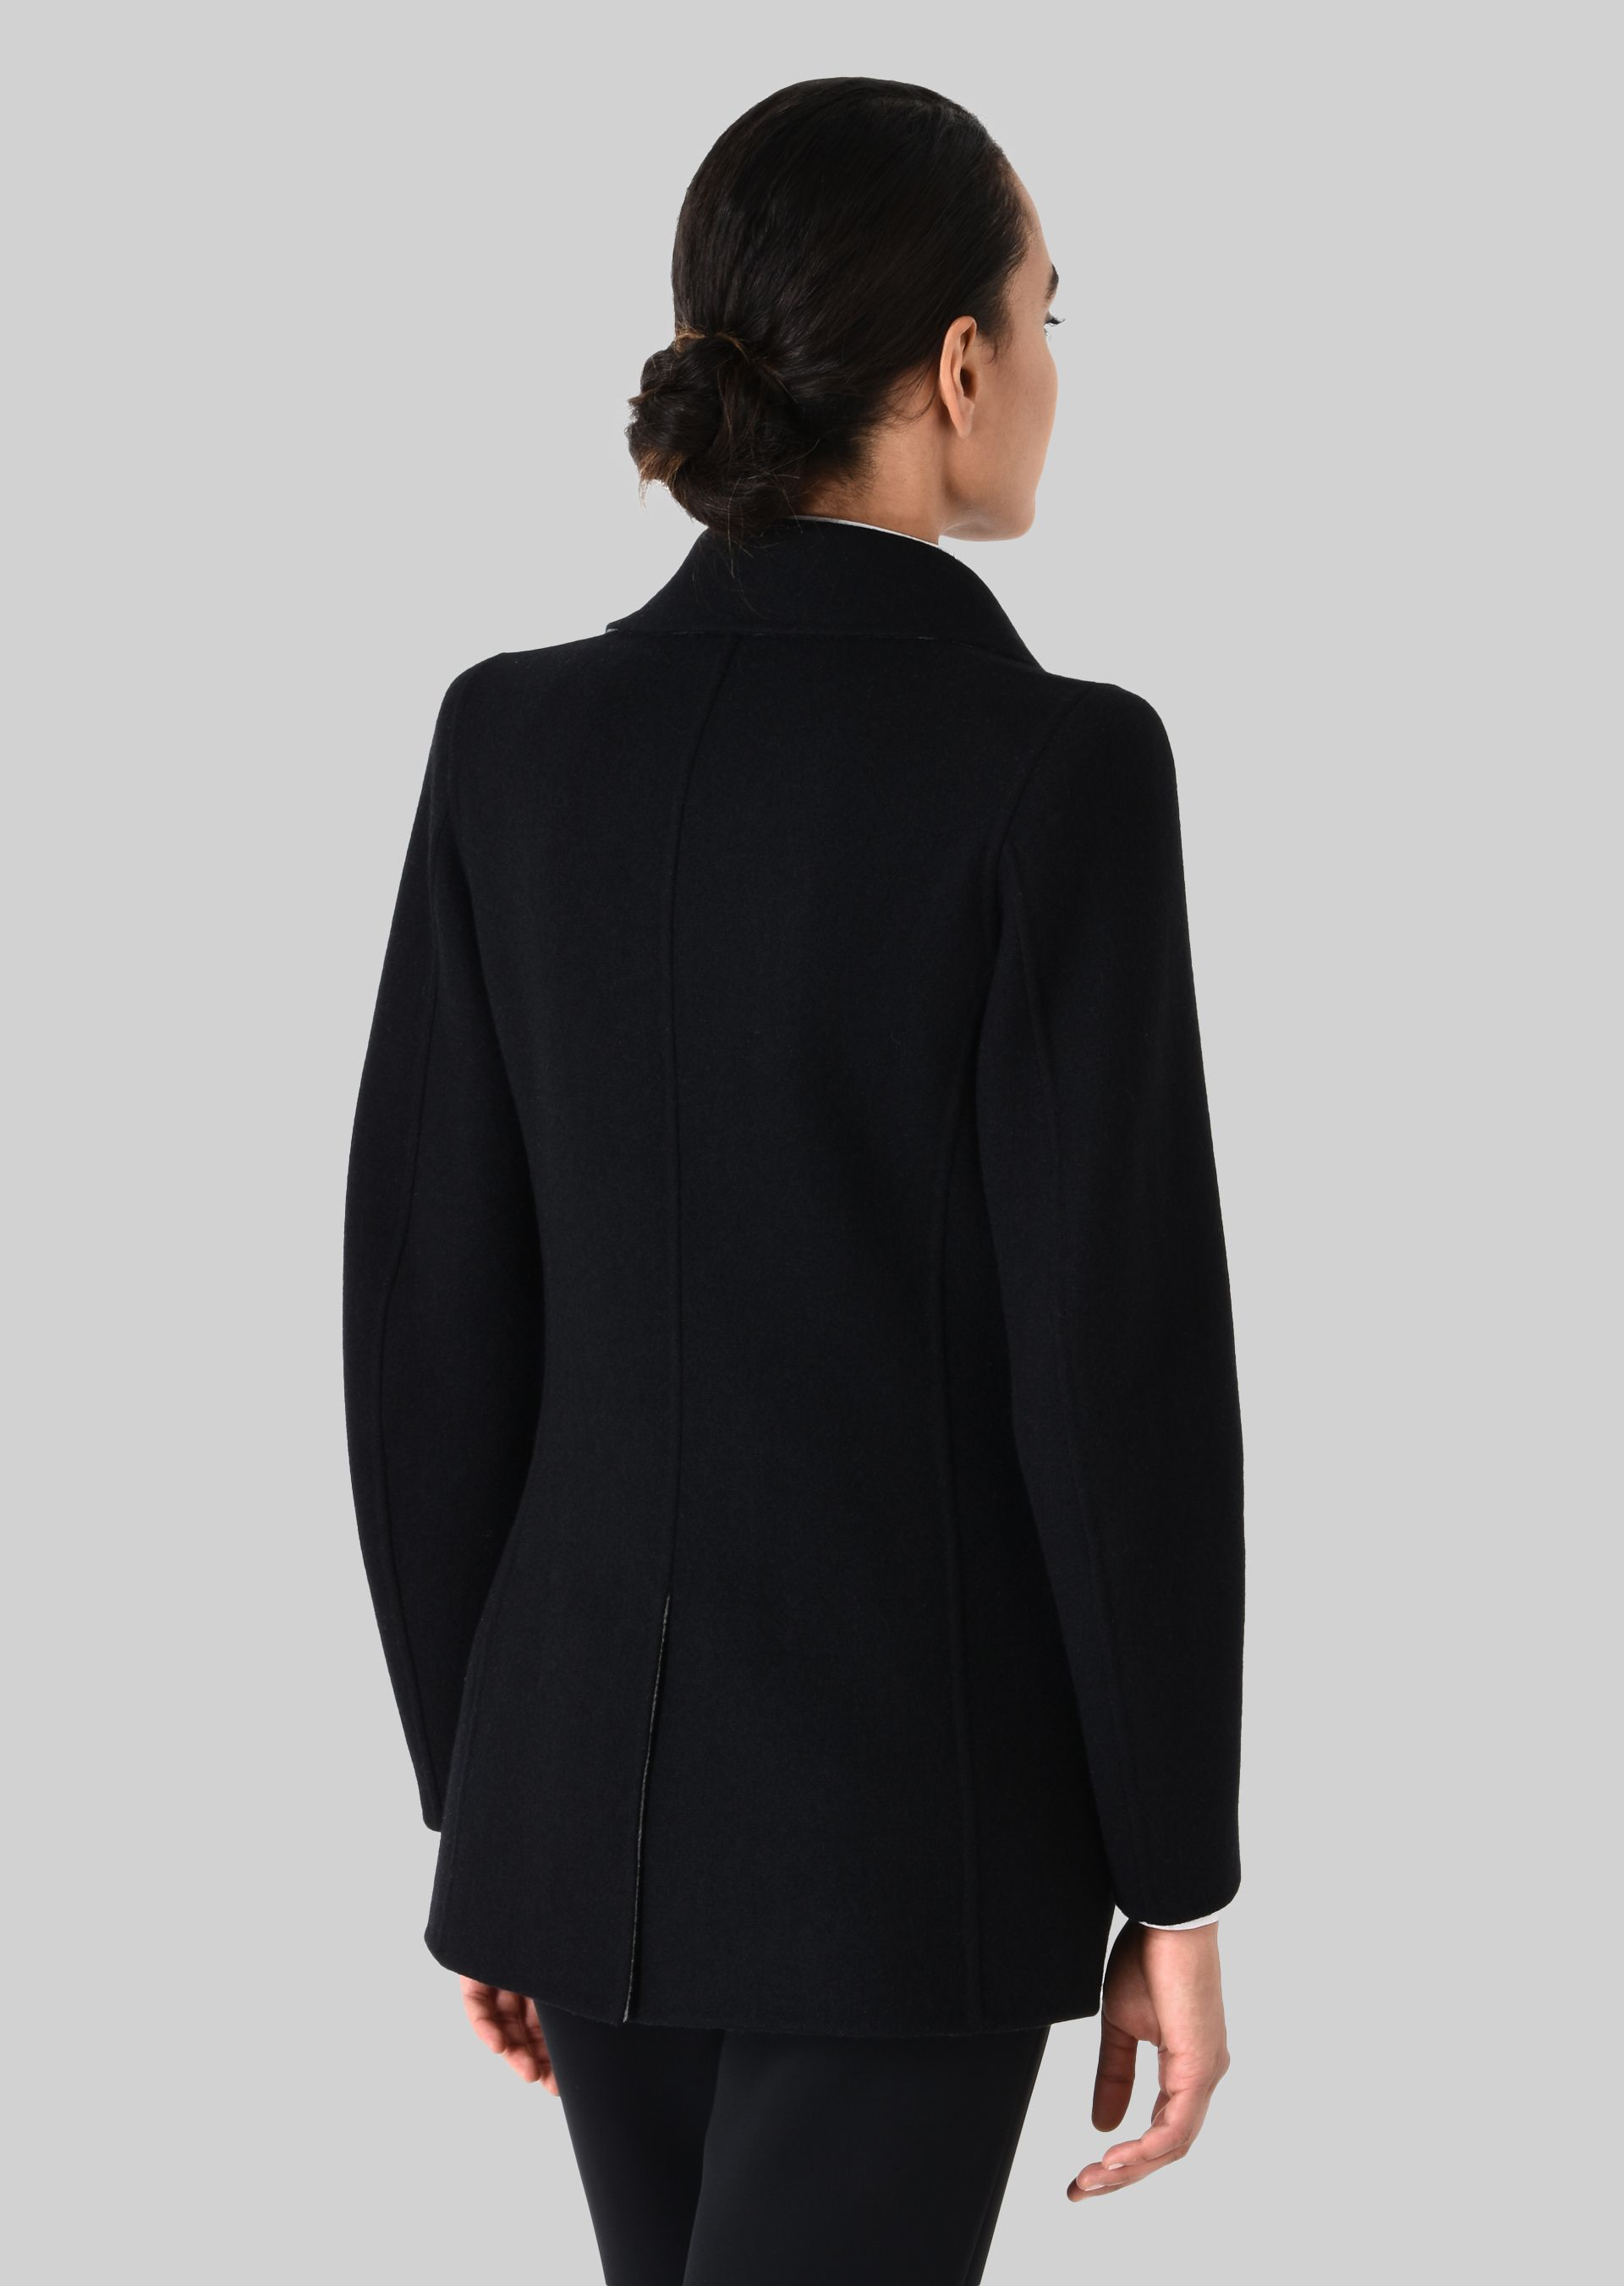 SINGLE BREASTED PEA COAT IN CASHMERE for Women |